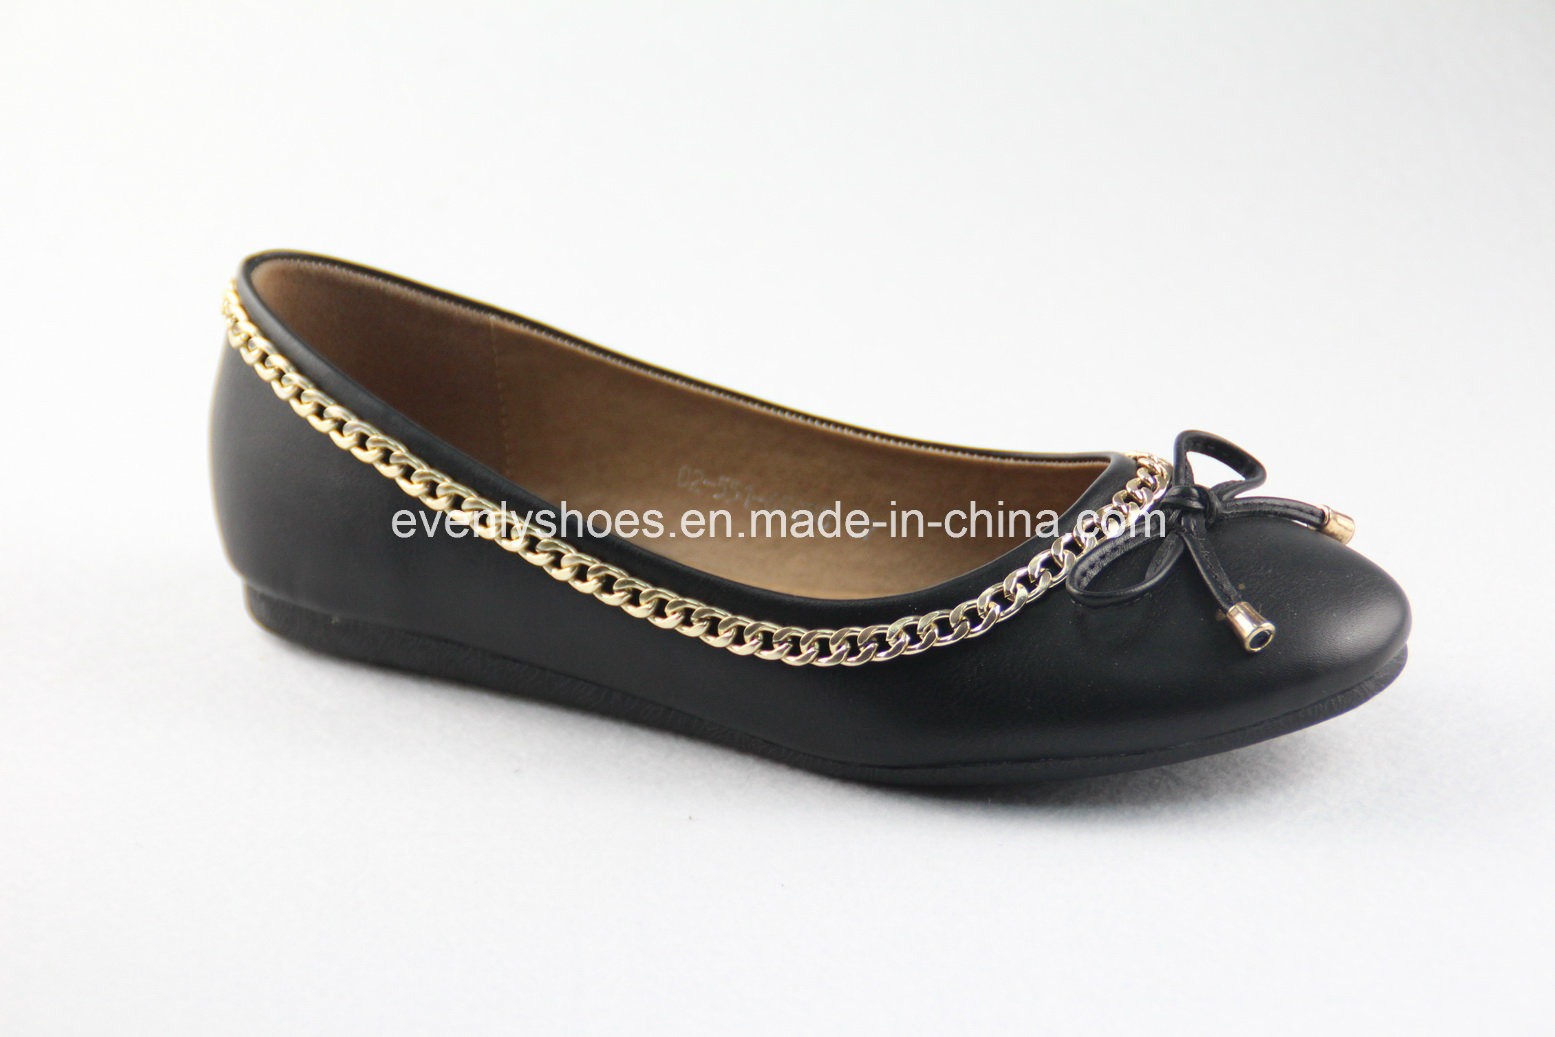 Lady′s Ballet Flats with Bowknot and Metal Chain Decoration